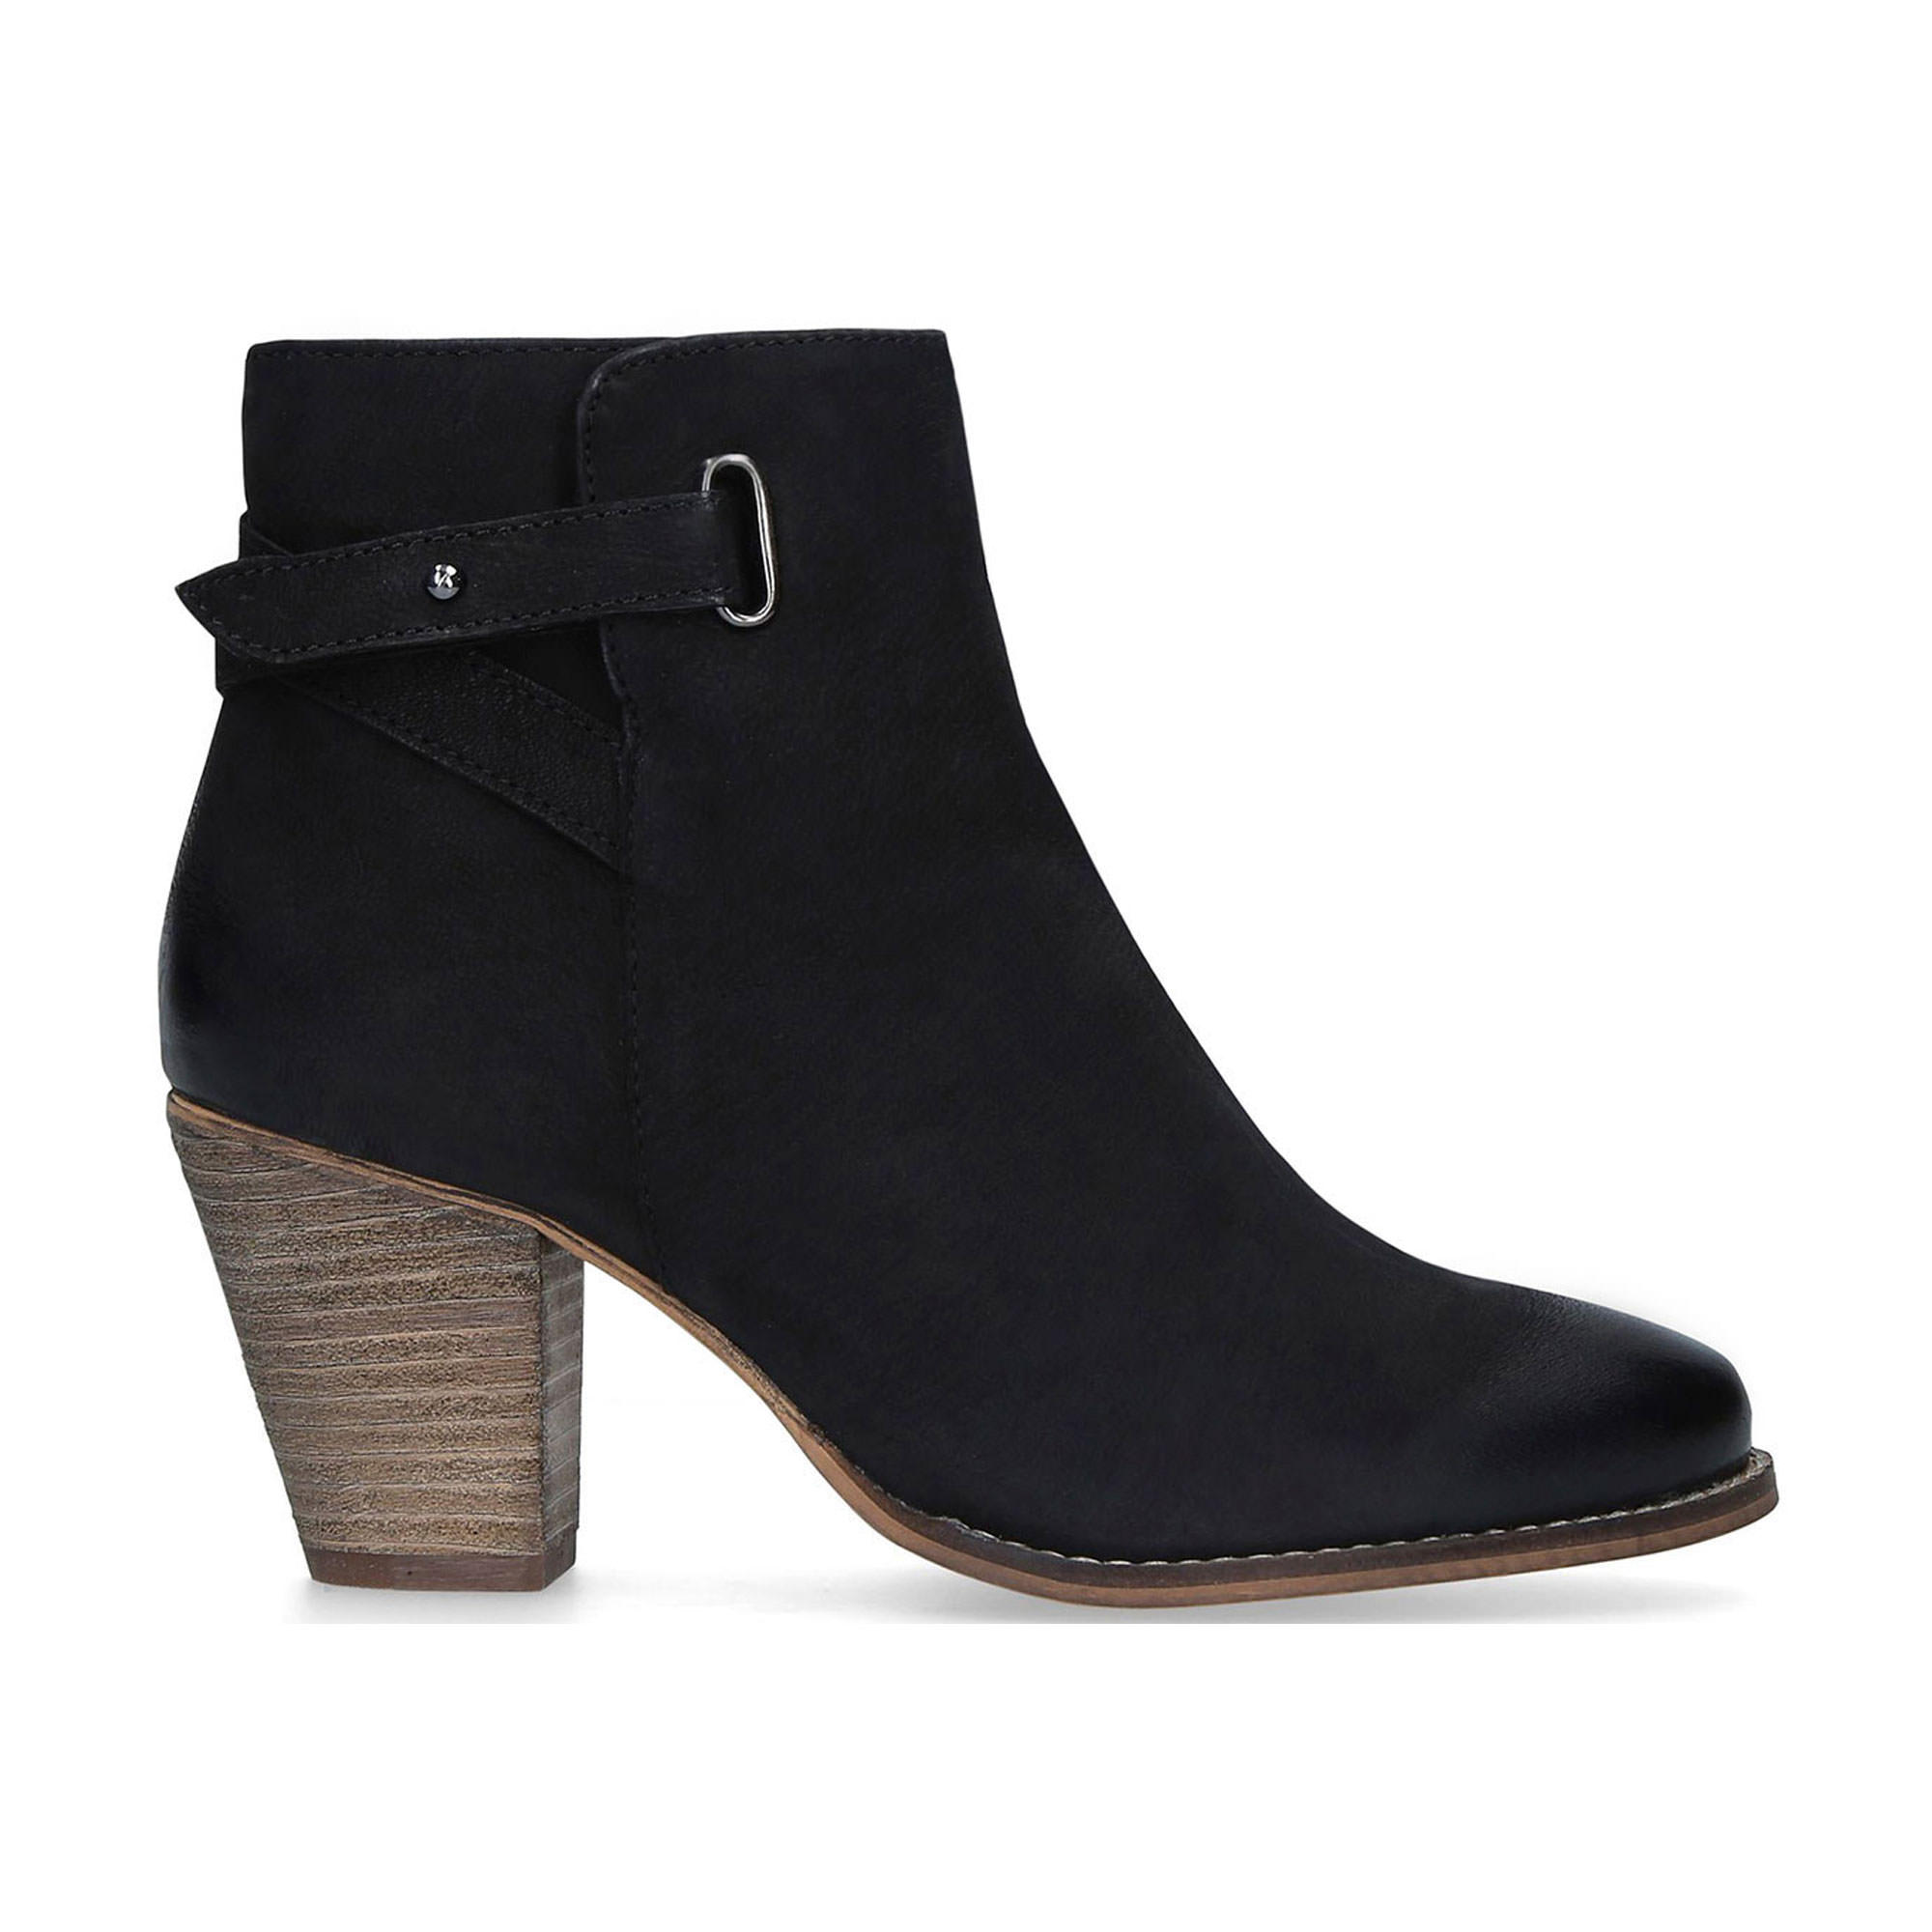 58004033800109BLACK: Wide Fit Smart Ankle Boots